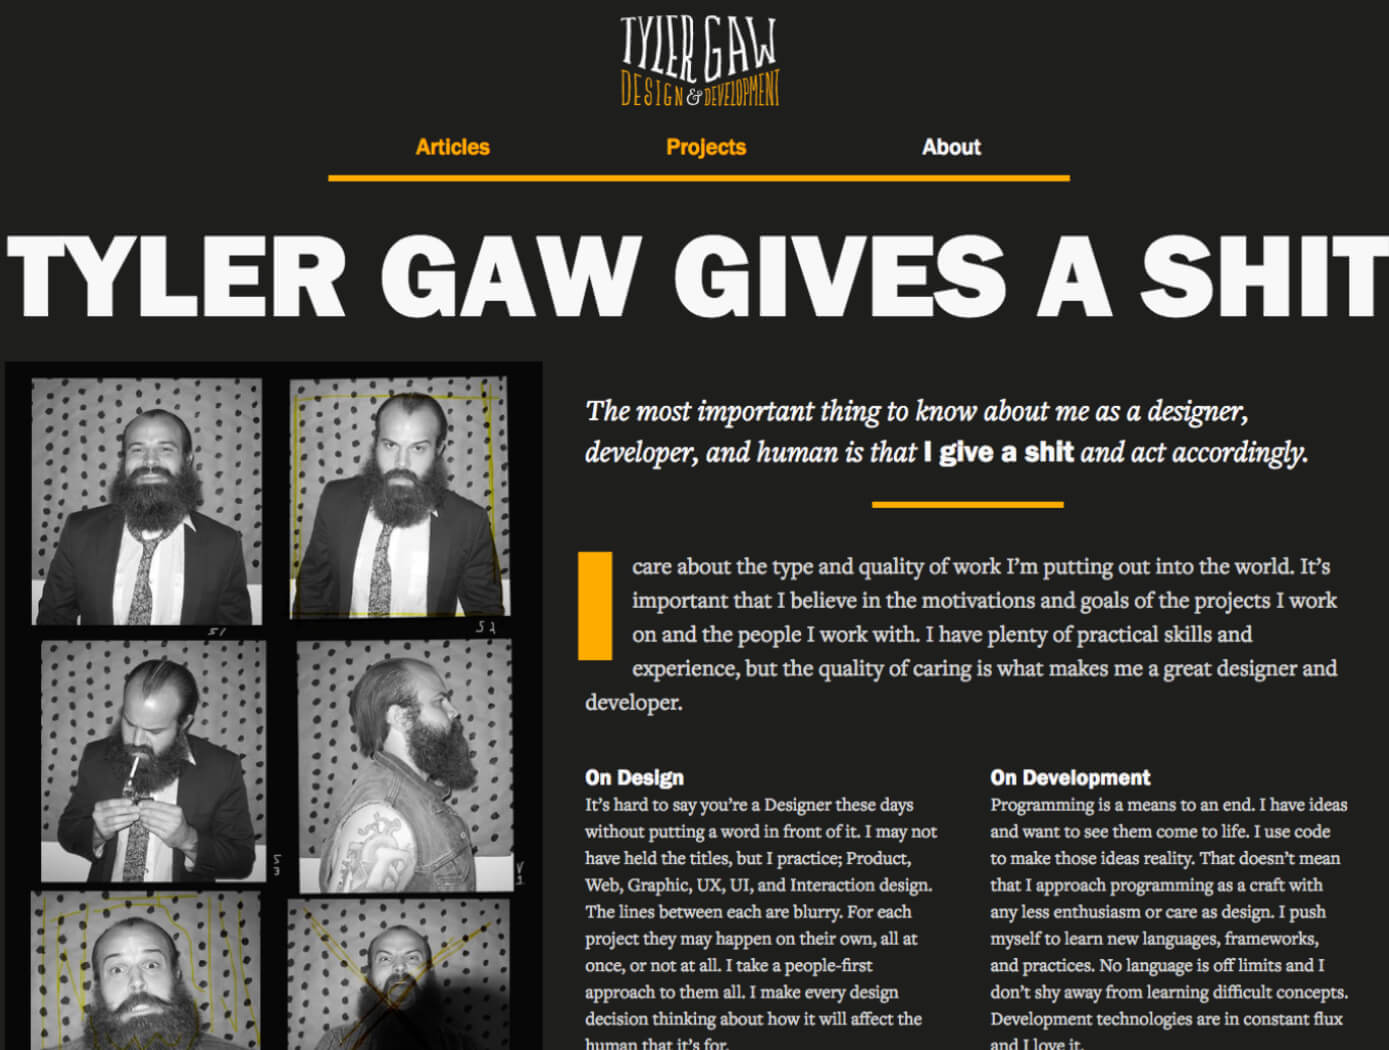 A screenshot of version 5 of tylergaw.com